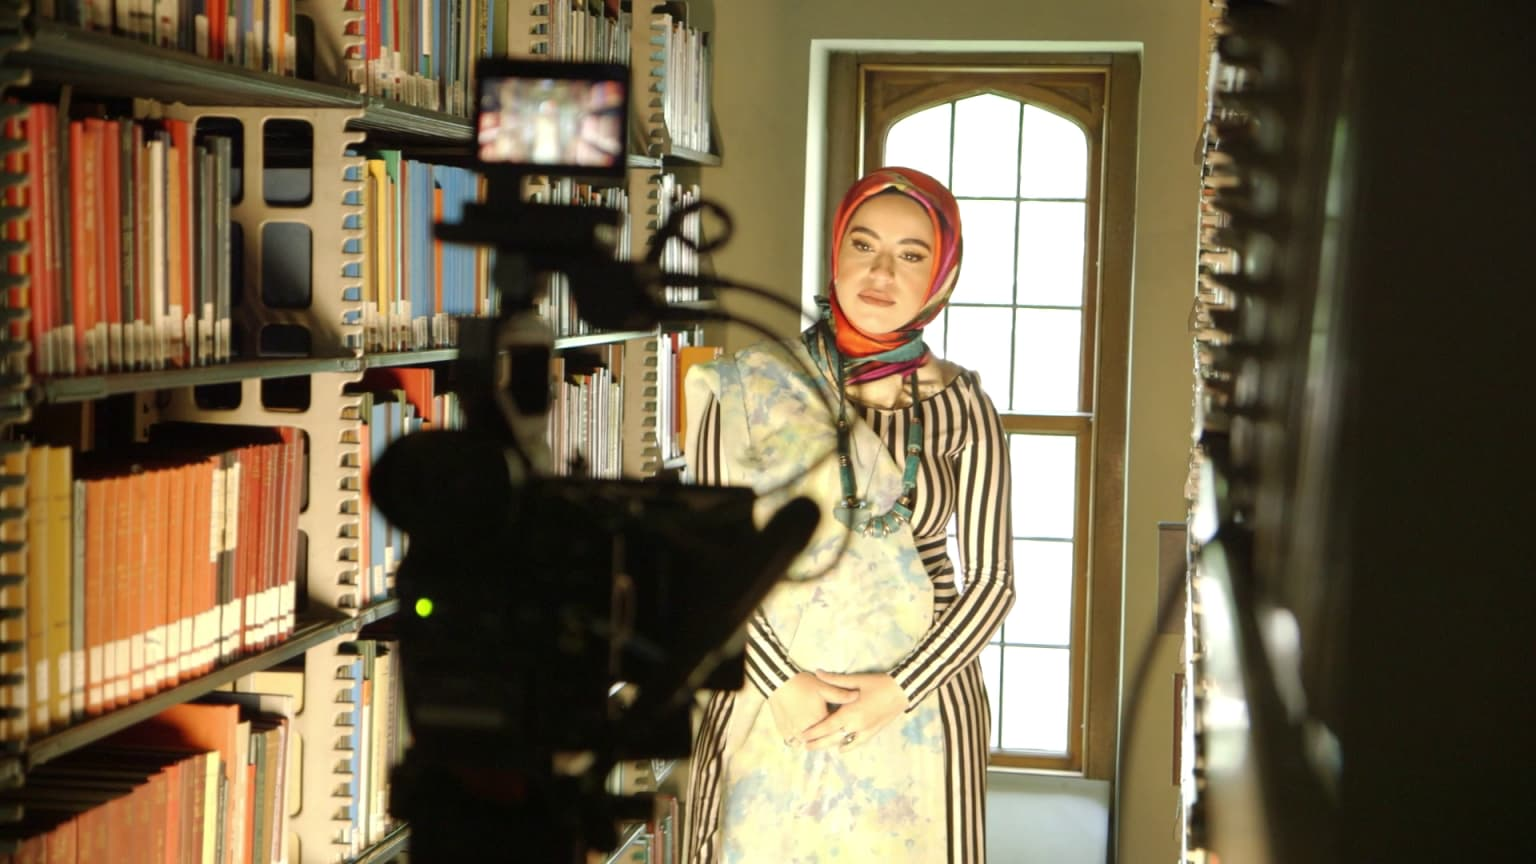 'Dog' Behind the Scenes, The Secret Life of Muslims